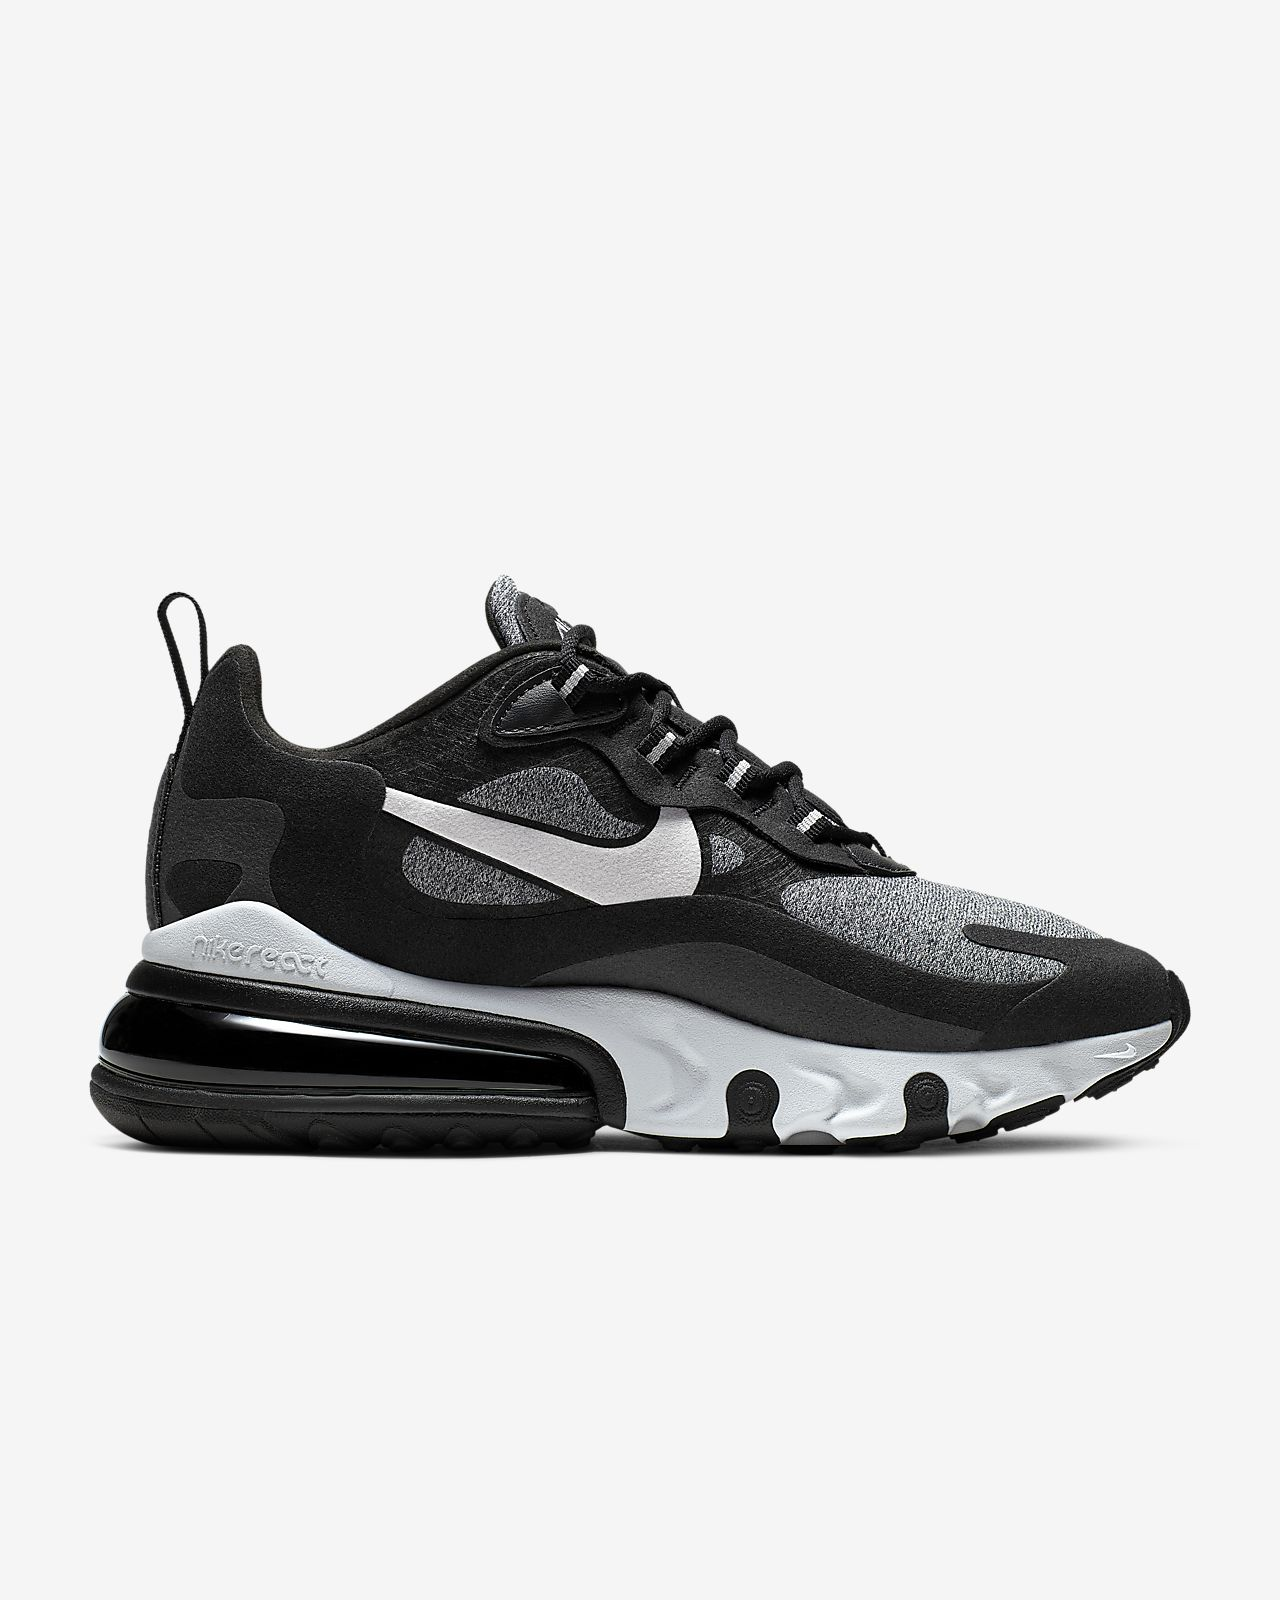 Nike WMNS Air Max 270 React vast grey vast grey